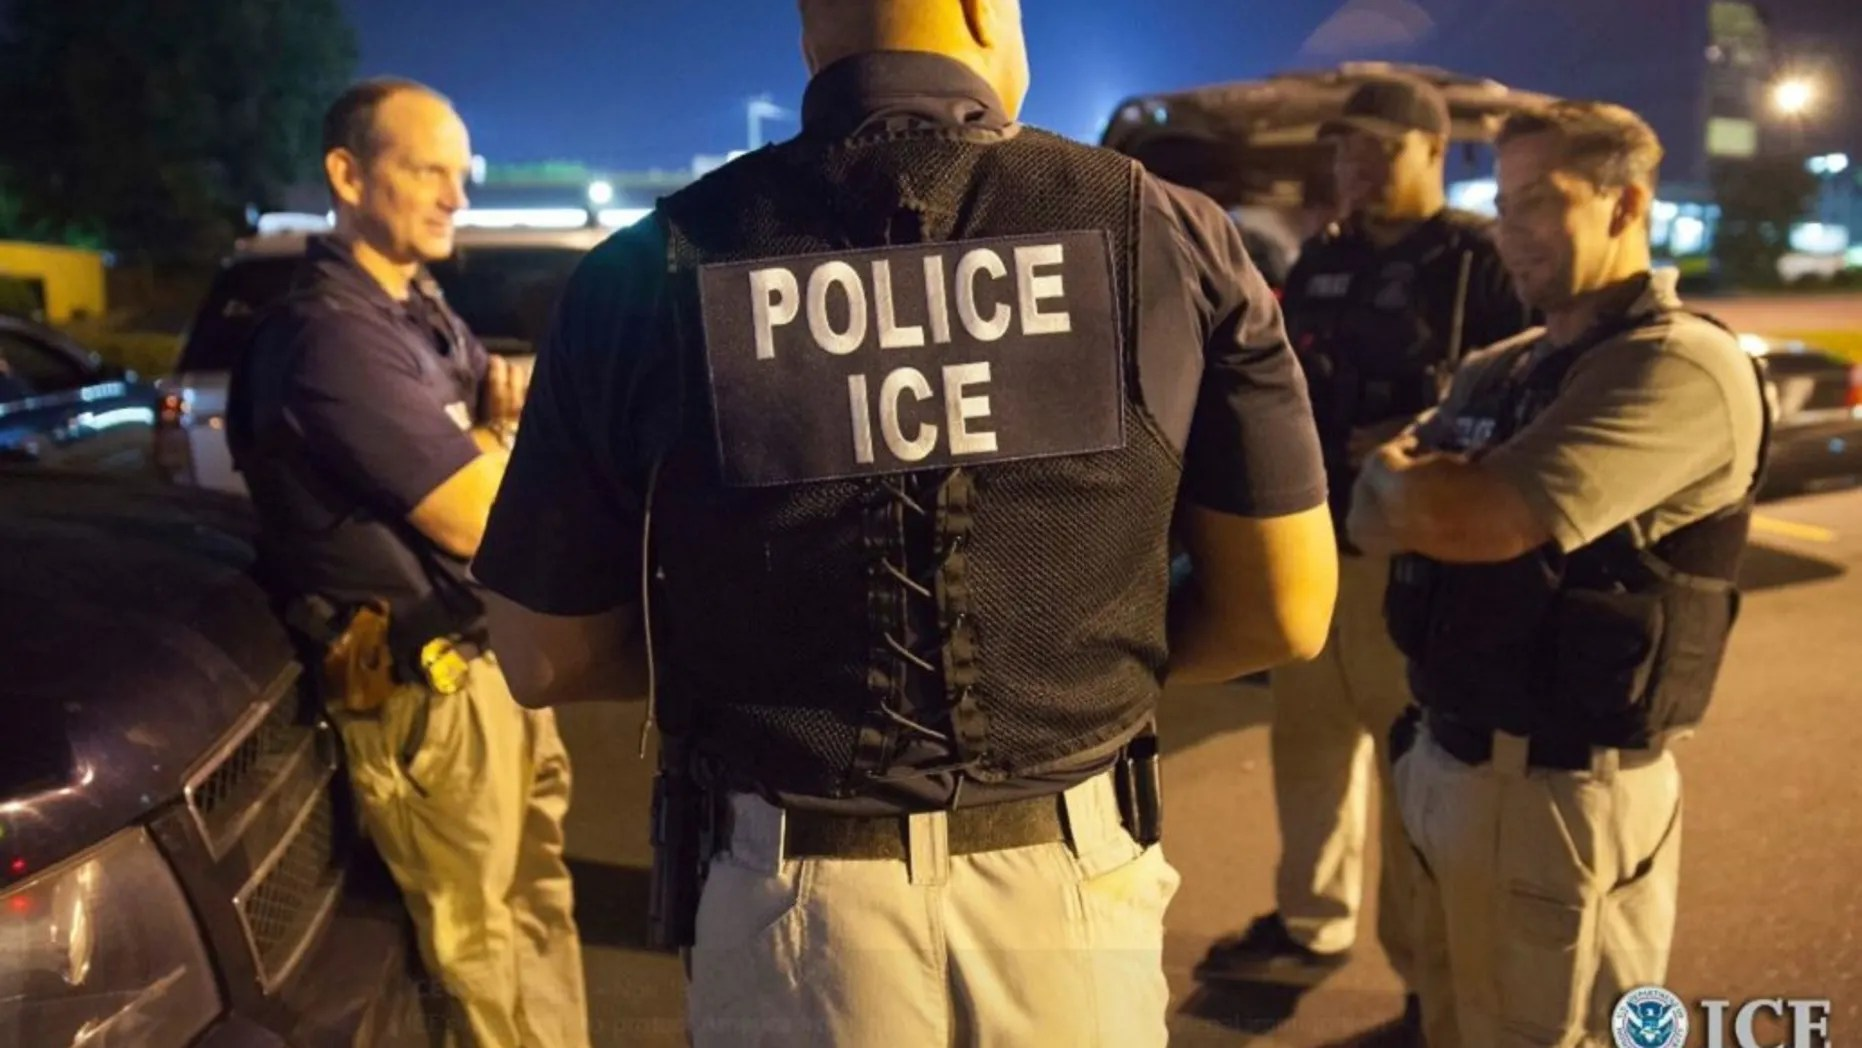 A Portland, Ore. man pleadedguilty to trying to bribe an Immigration and Customs Enforcement (ICE) agent.